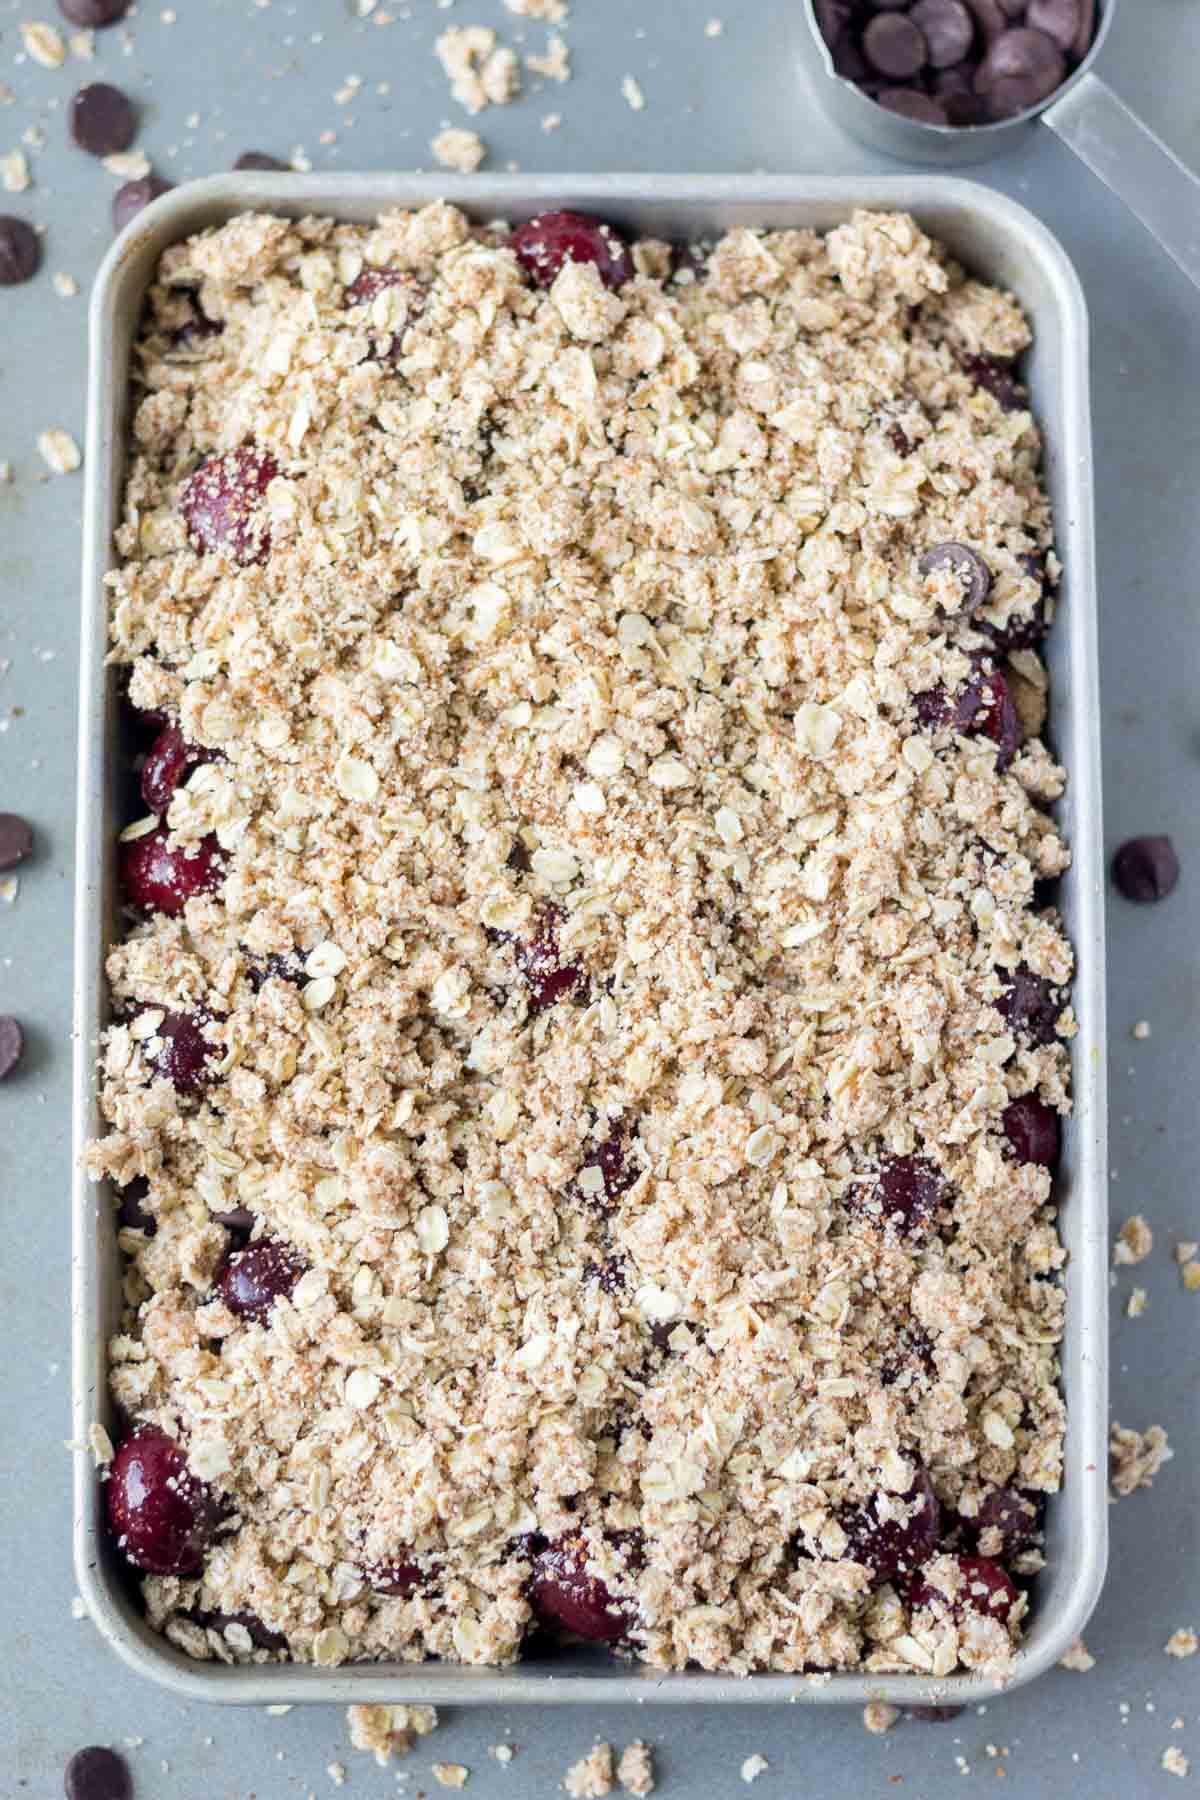 These easy cherry crisp recipe is made with frozen cherries and dark chocolate and topped with a gluten free oat crust. It's the perfect summer dessert recipe!